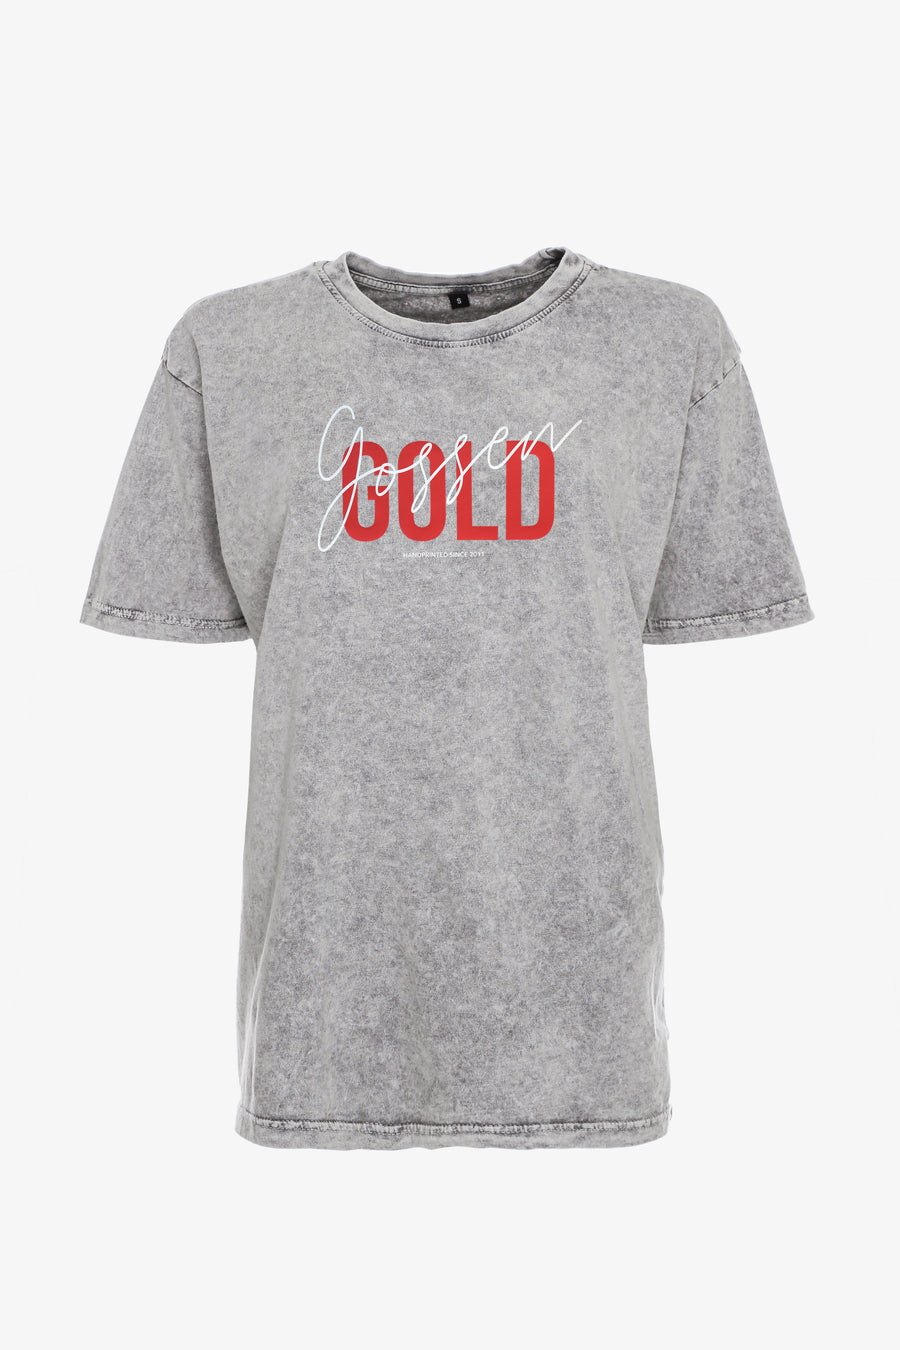 Gossengold - Logo T Shirt Unisex Fit - washed grey